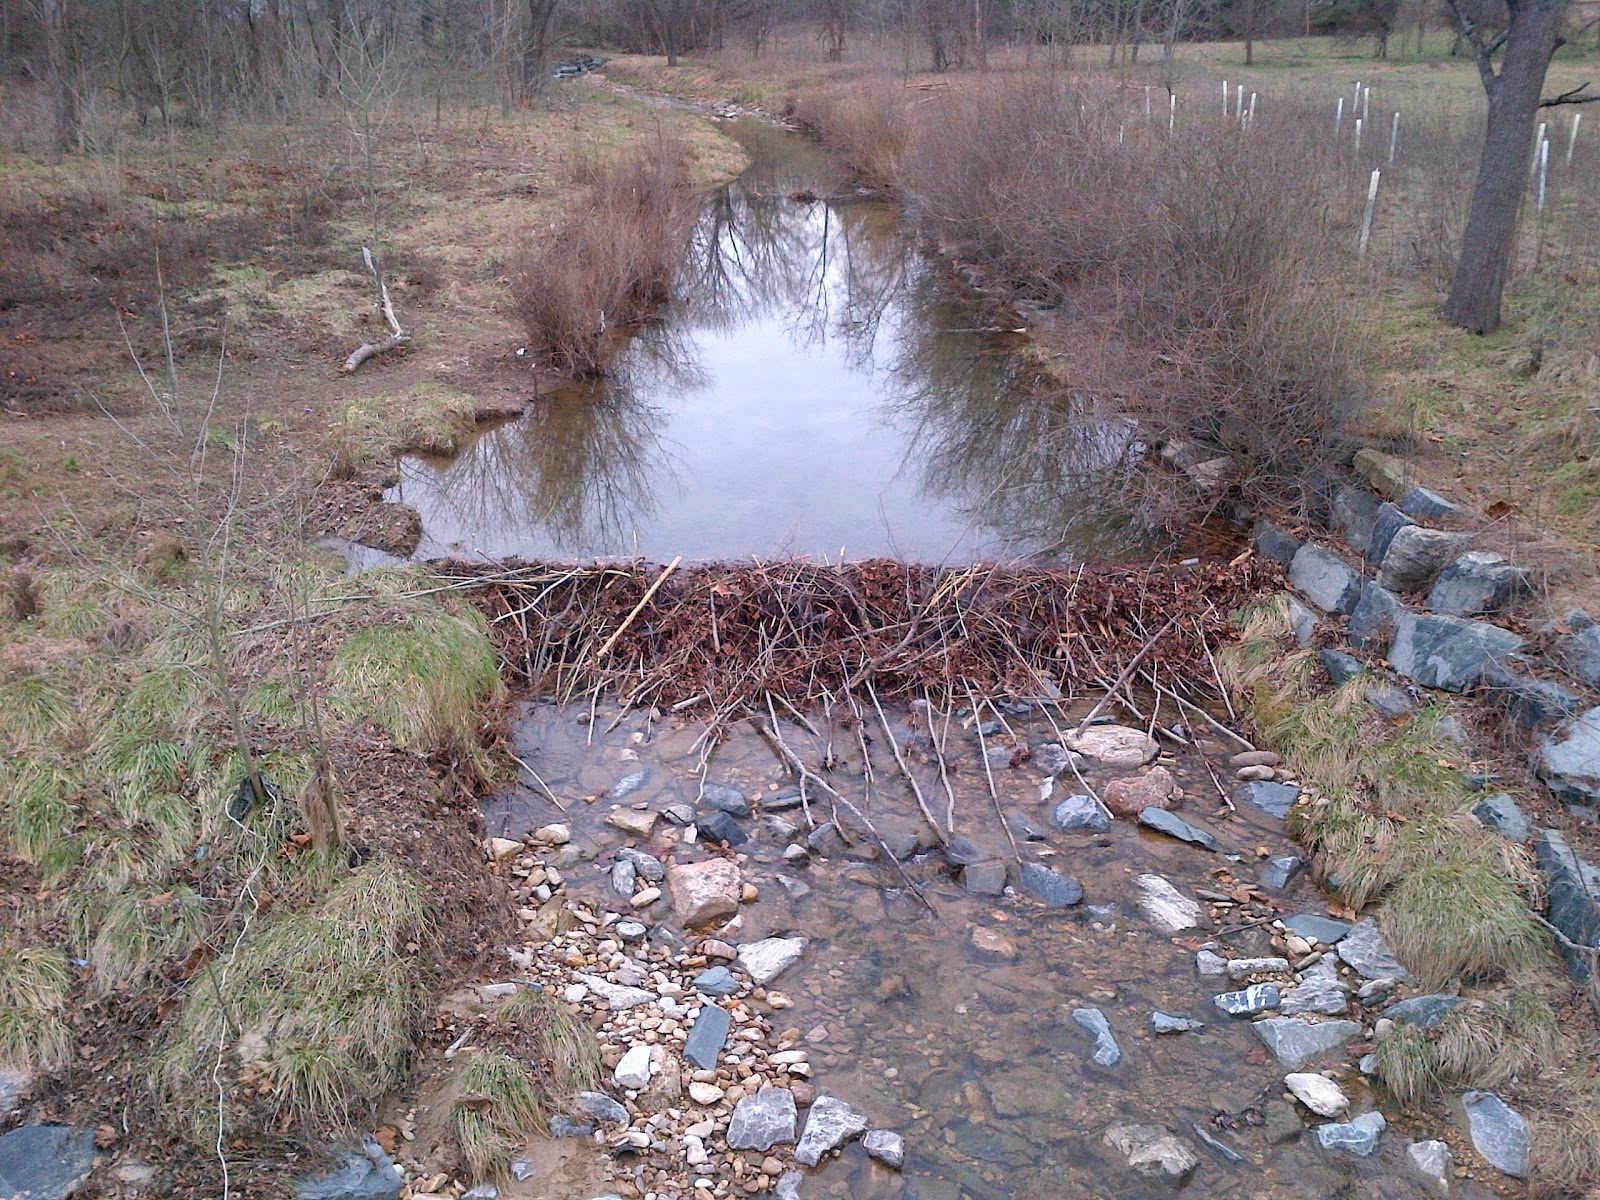 Beaver dam on Minebank Run, 31 December 2012